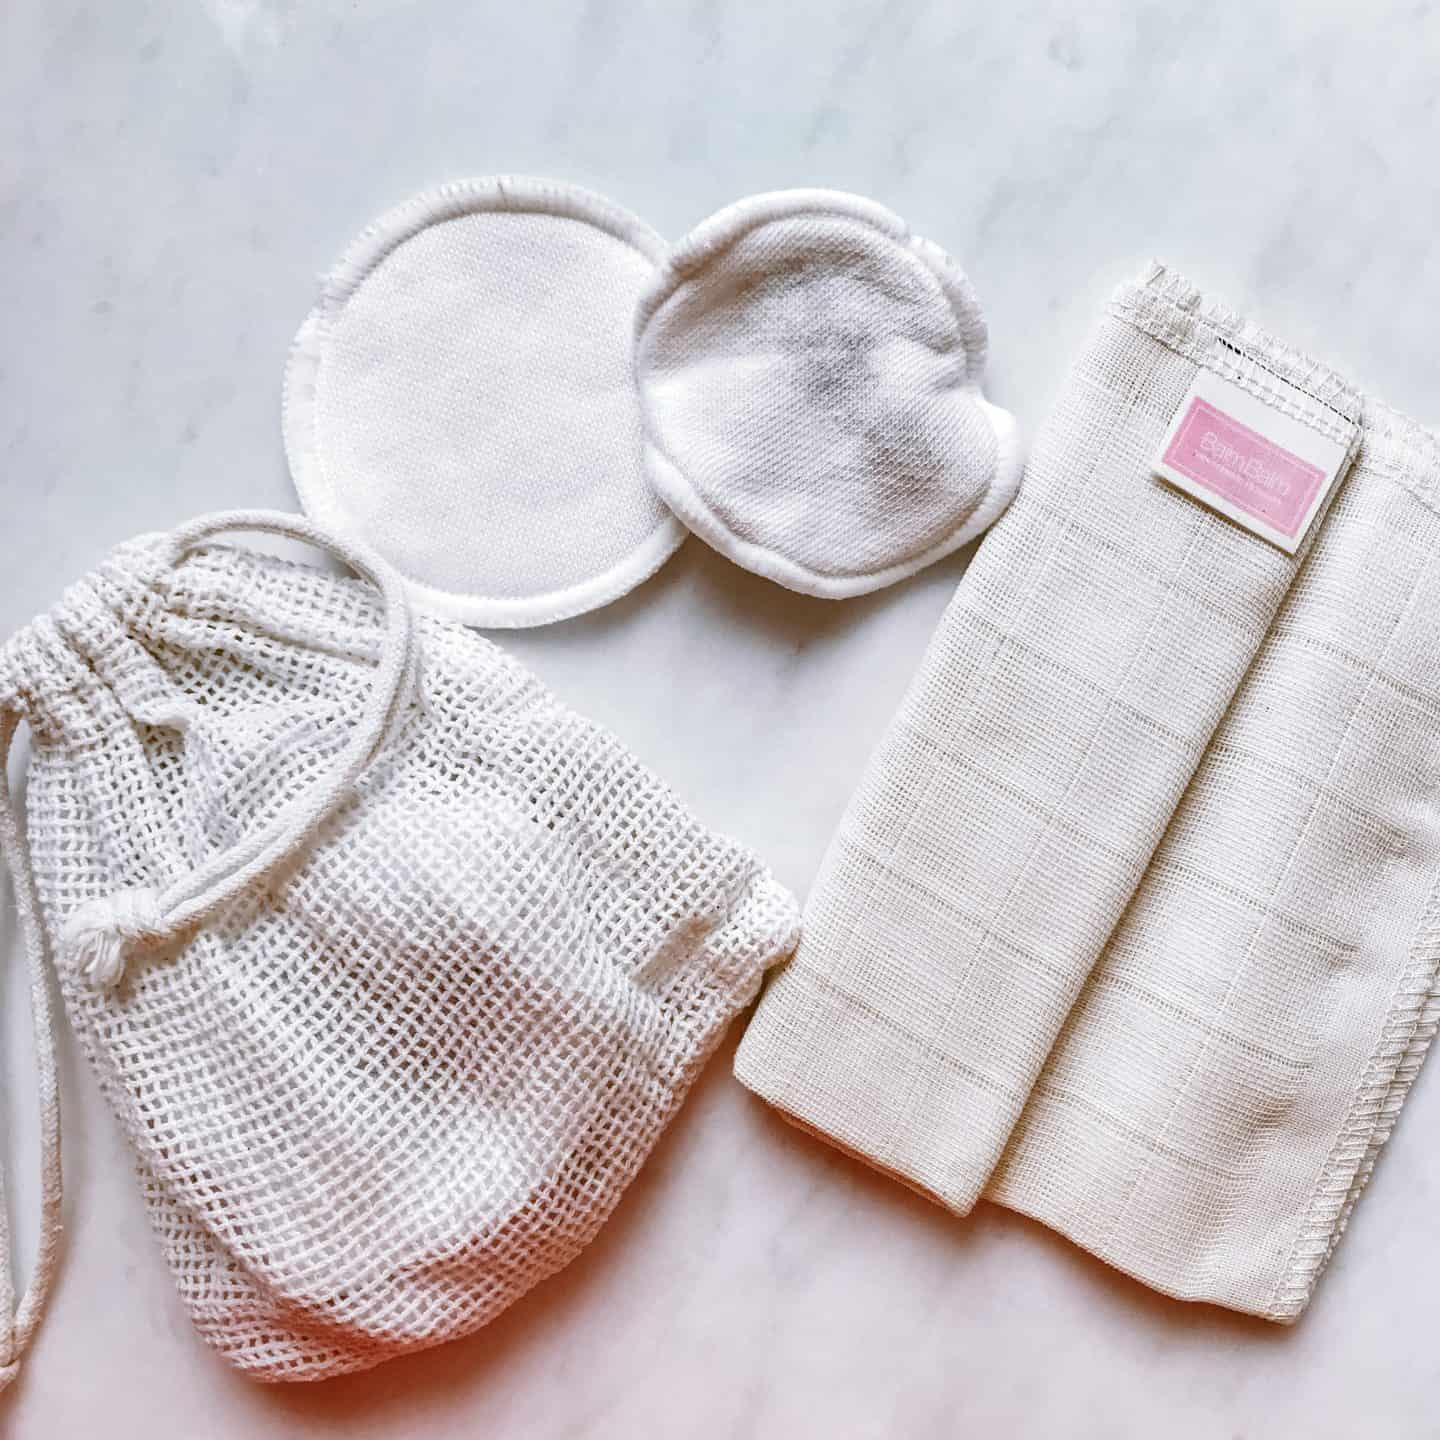 Reusable cotton pads and muslin cloth